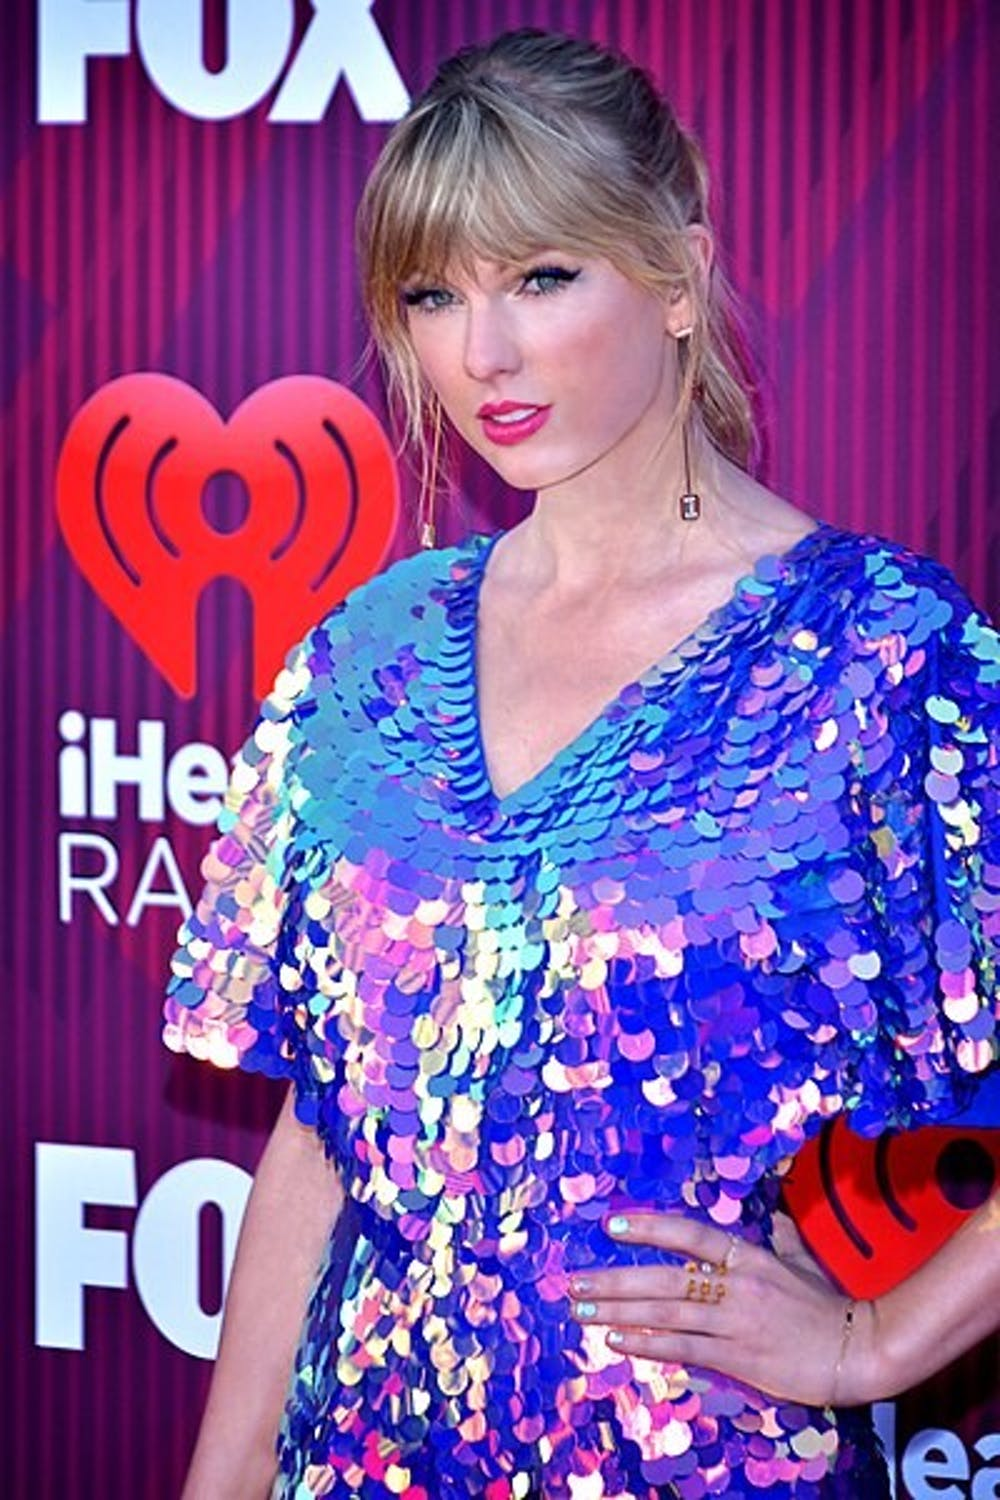 <p>Taylor Swift, pictured here earlier in 2019, was named the Artist of the Decade at this year's American Music Awards.</p>